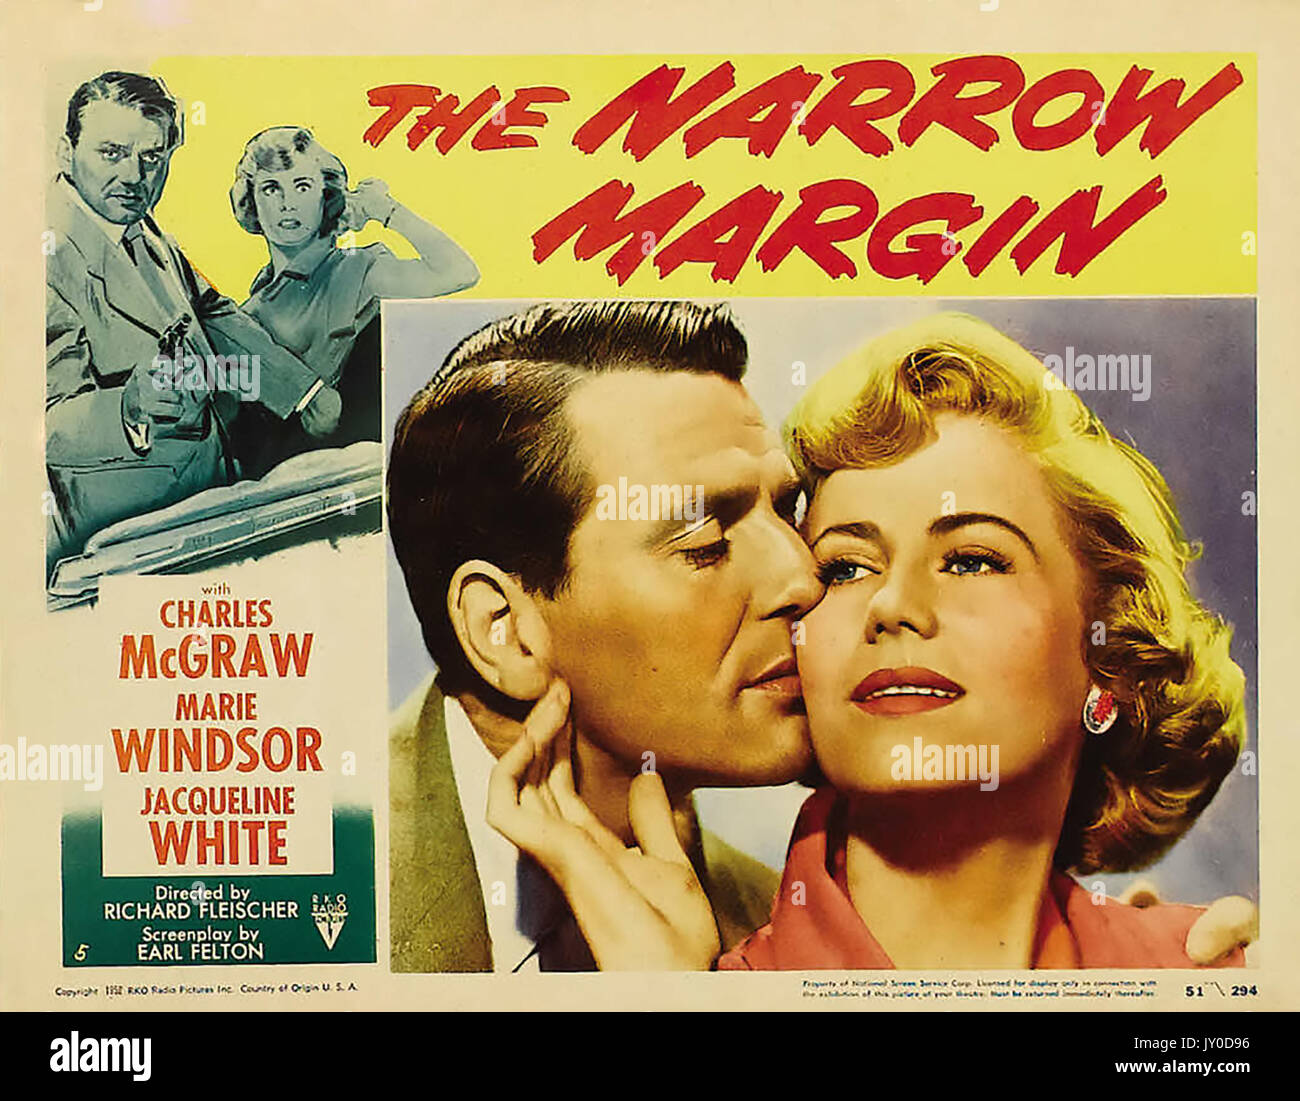 THE NARROW MARGIN 1952 RKO film with Jacqueline White and Charles McGraw directed by Robert Fleischer - Stock Image